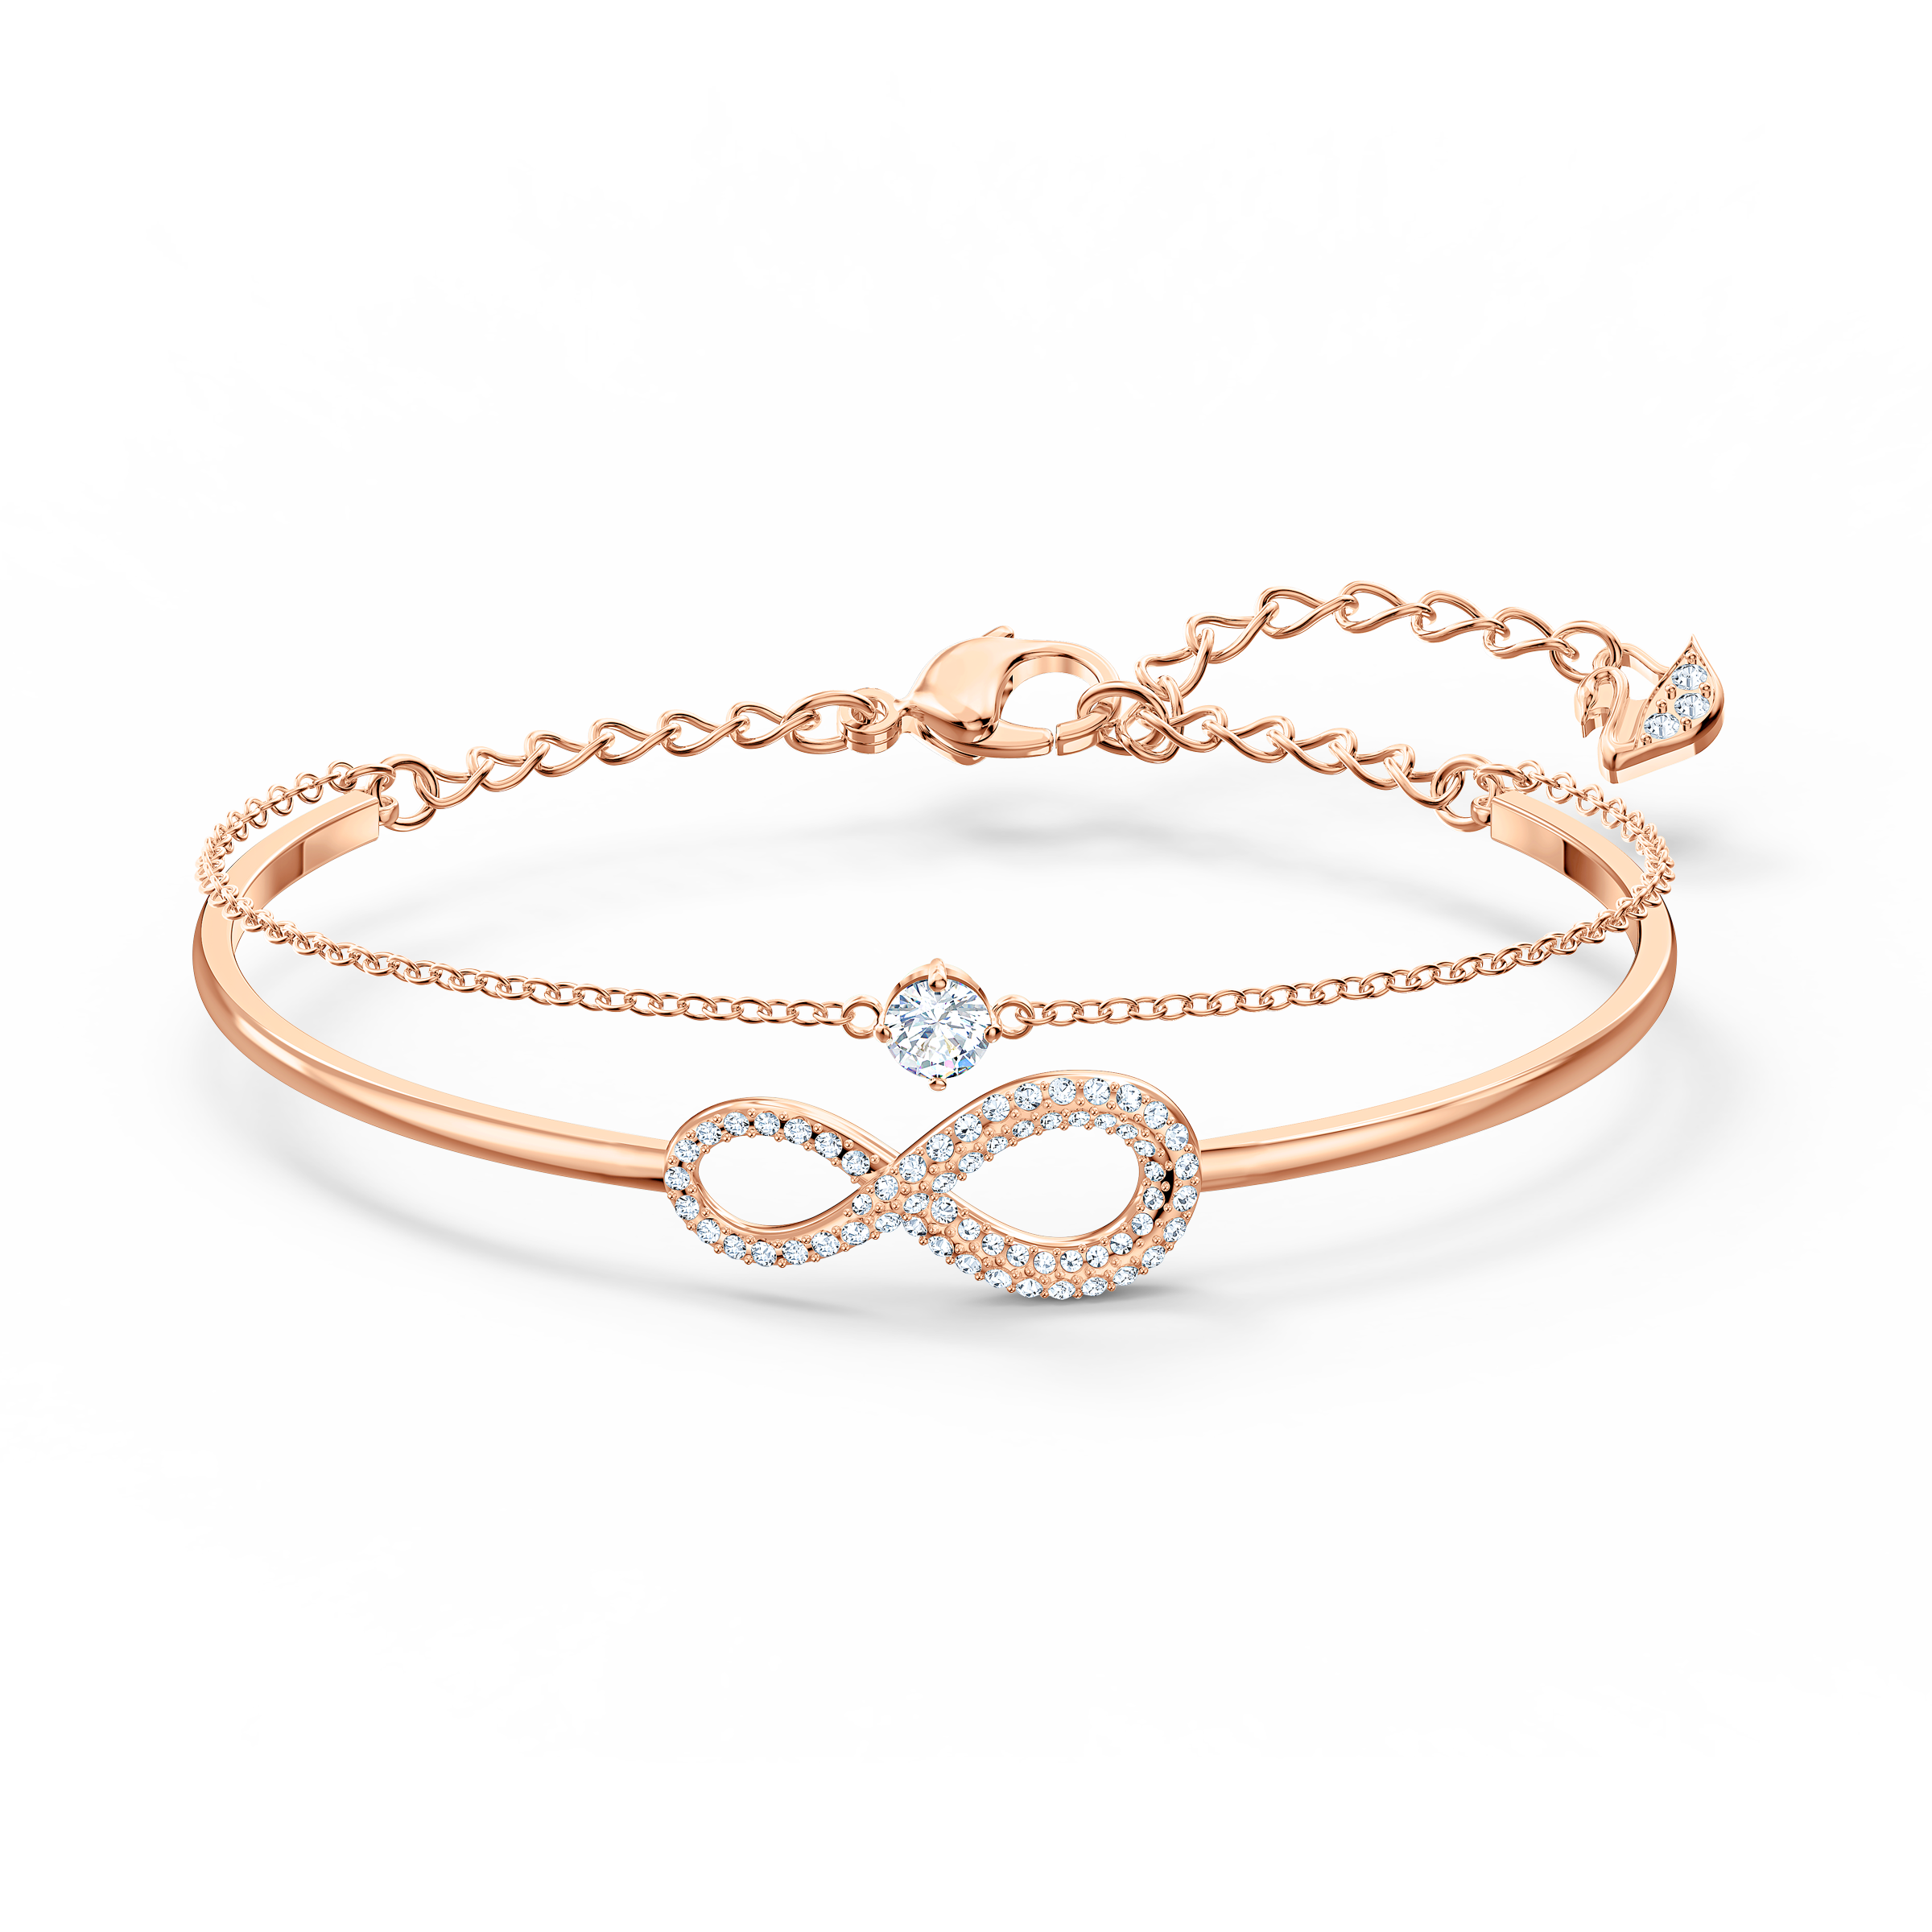 Swarovski Infinity Bangle, White, Rose-gold tone plated